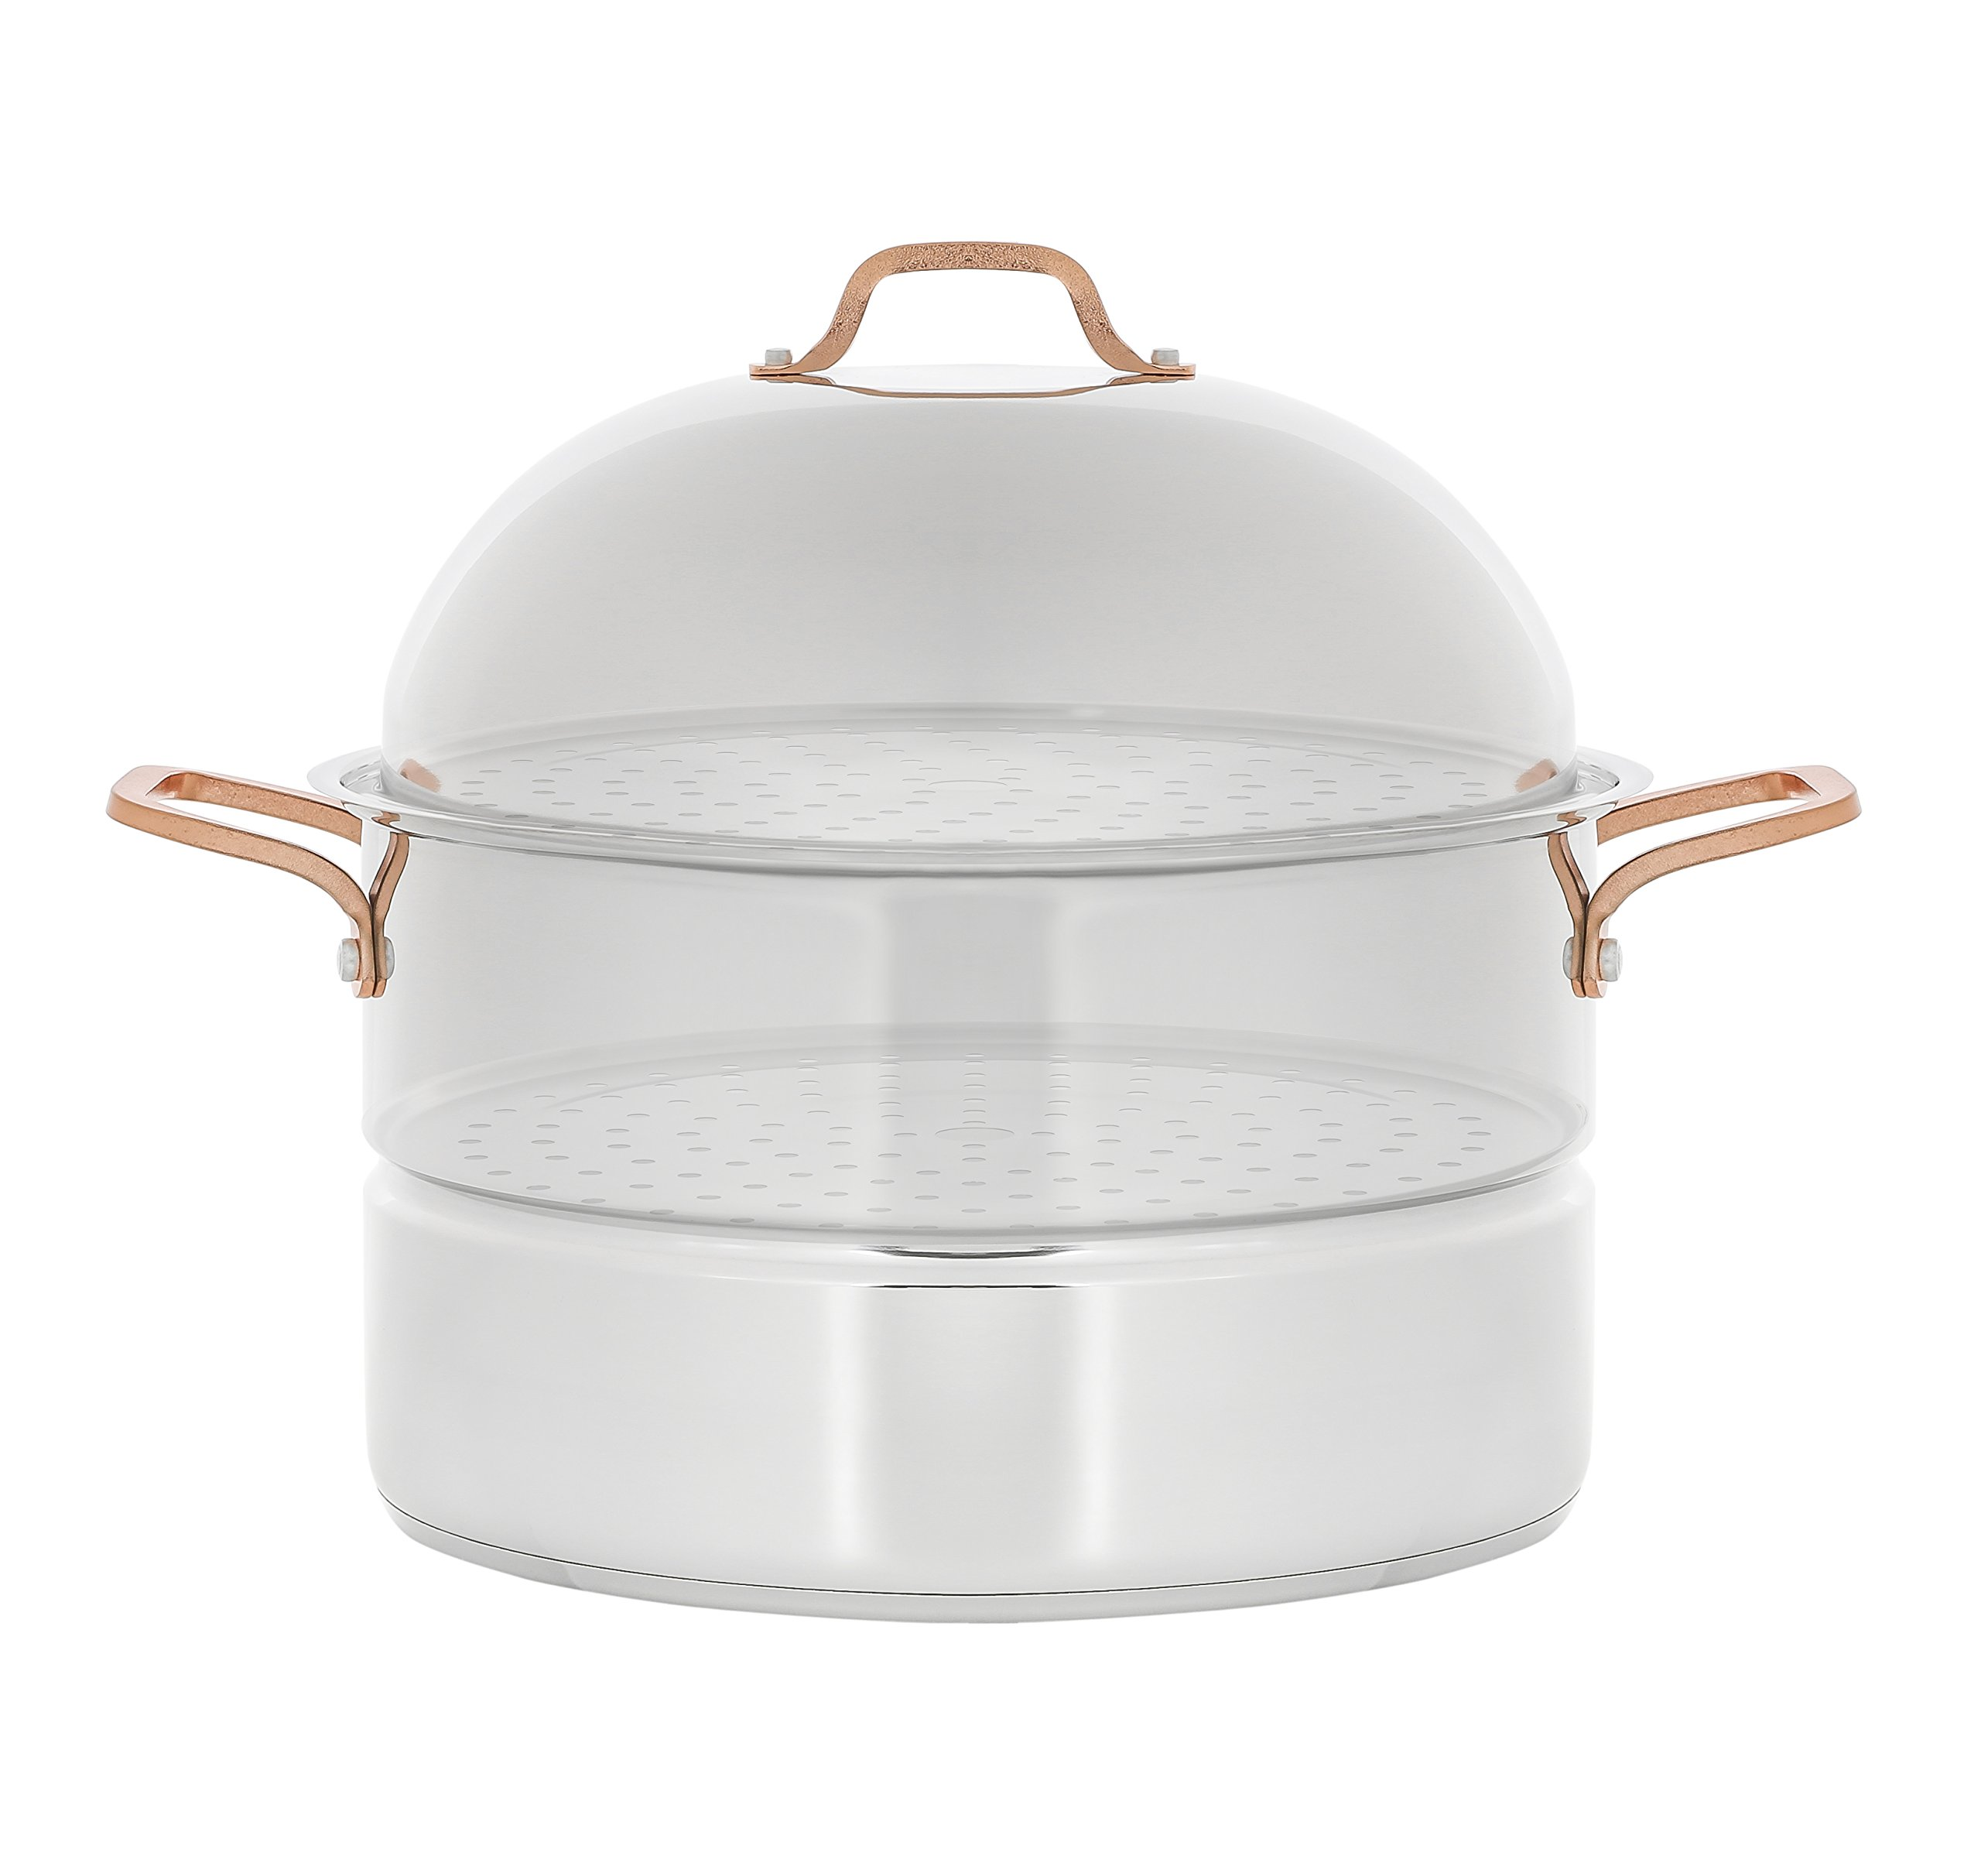 CONCORD 18 Quart Premium Stainless Steel 3 Tier Steamer w/Rose Gold Handles 34 CM (Extra Large) (V.2 2019 New Model) by Concord Cookware (Image #3)